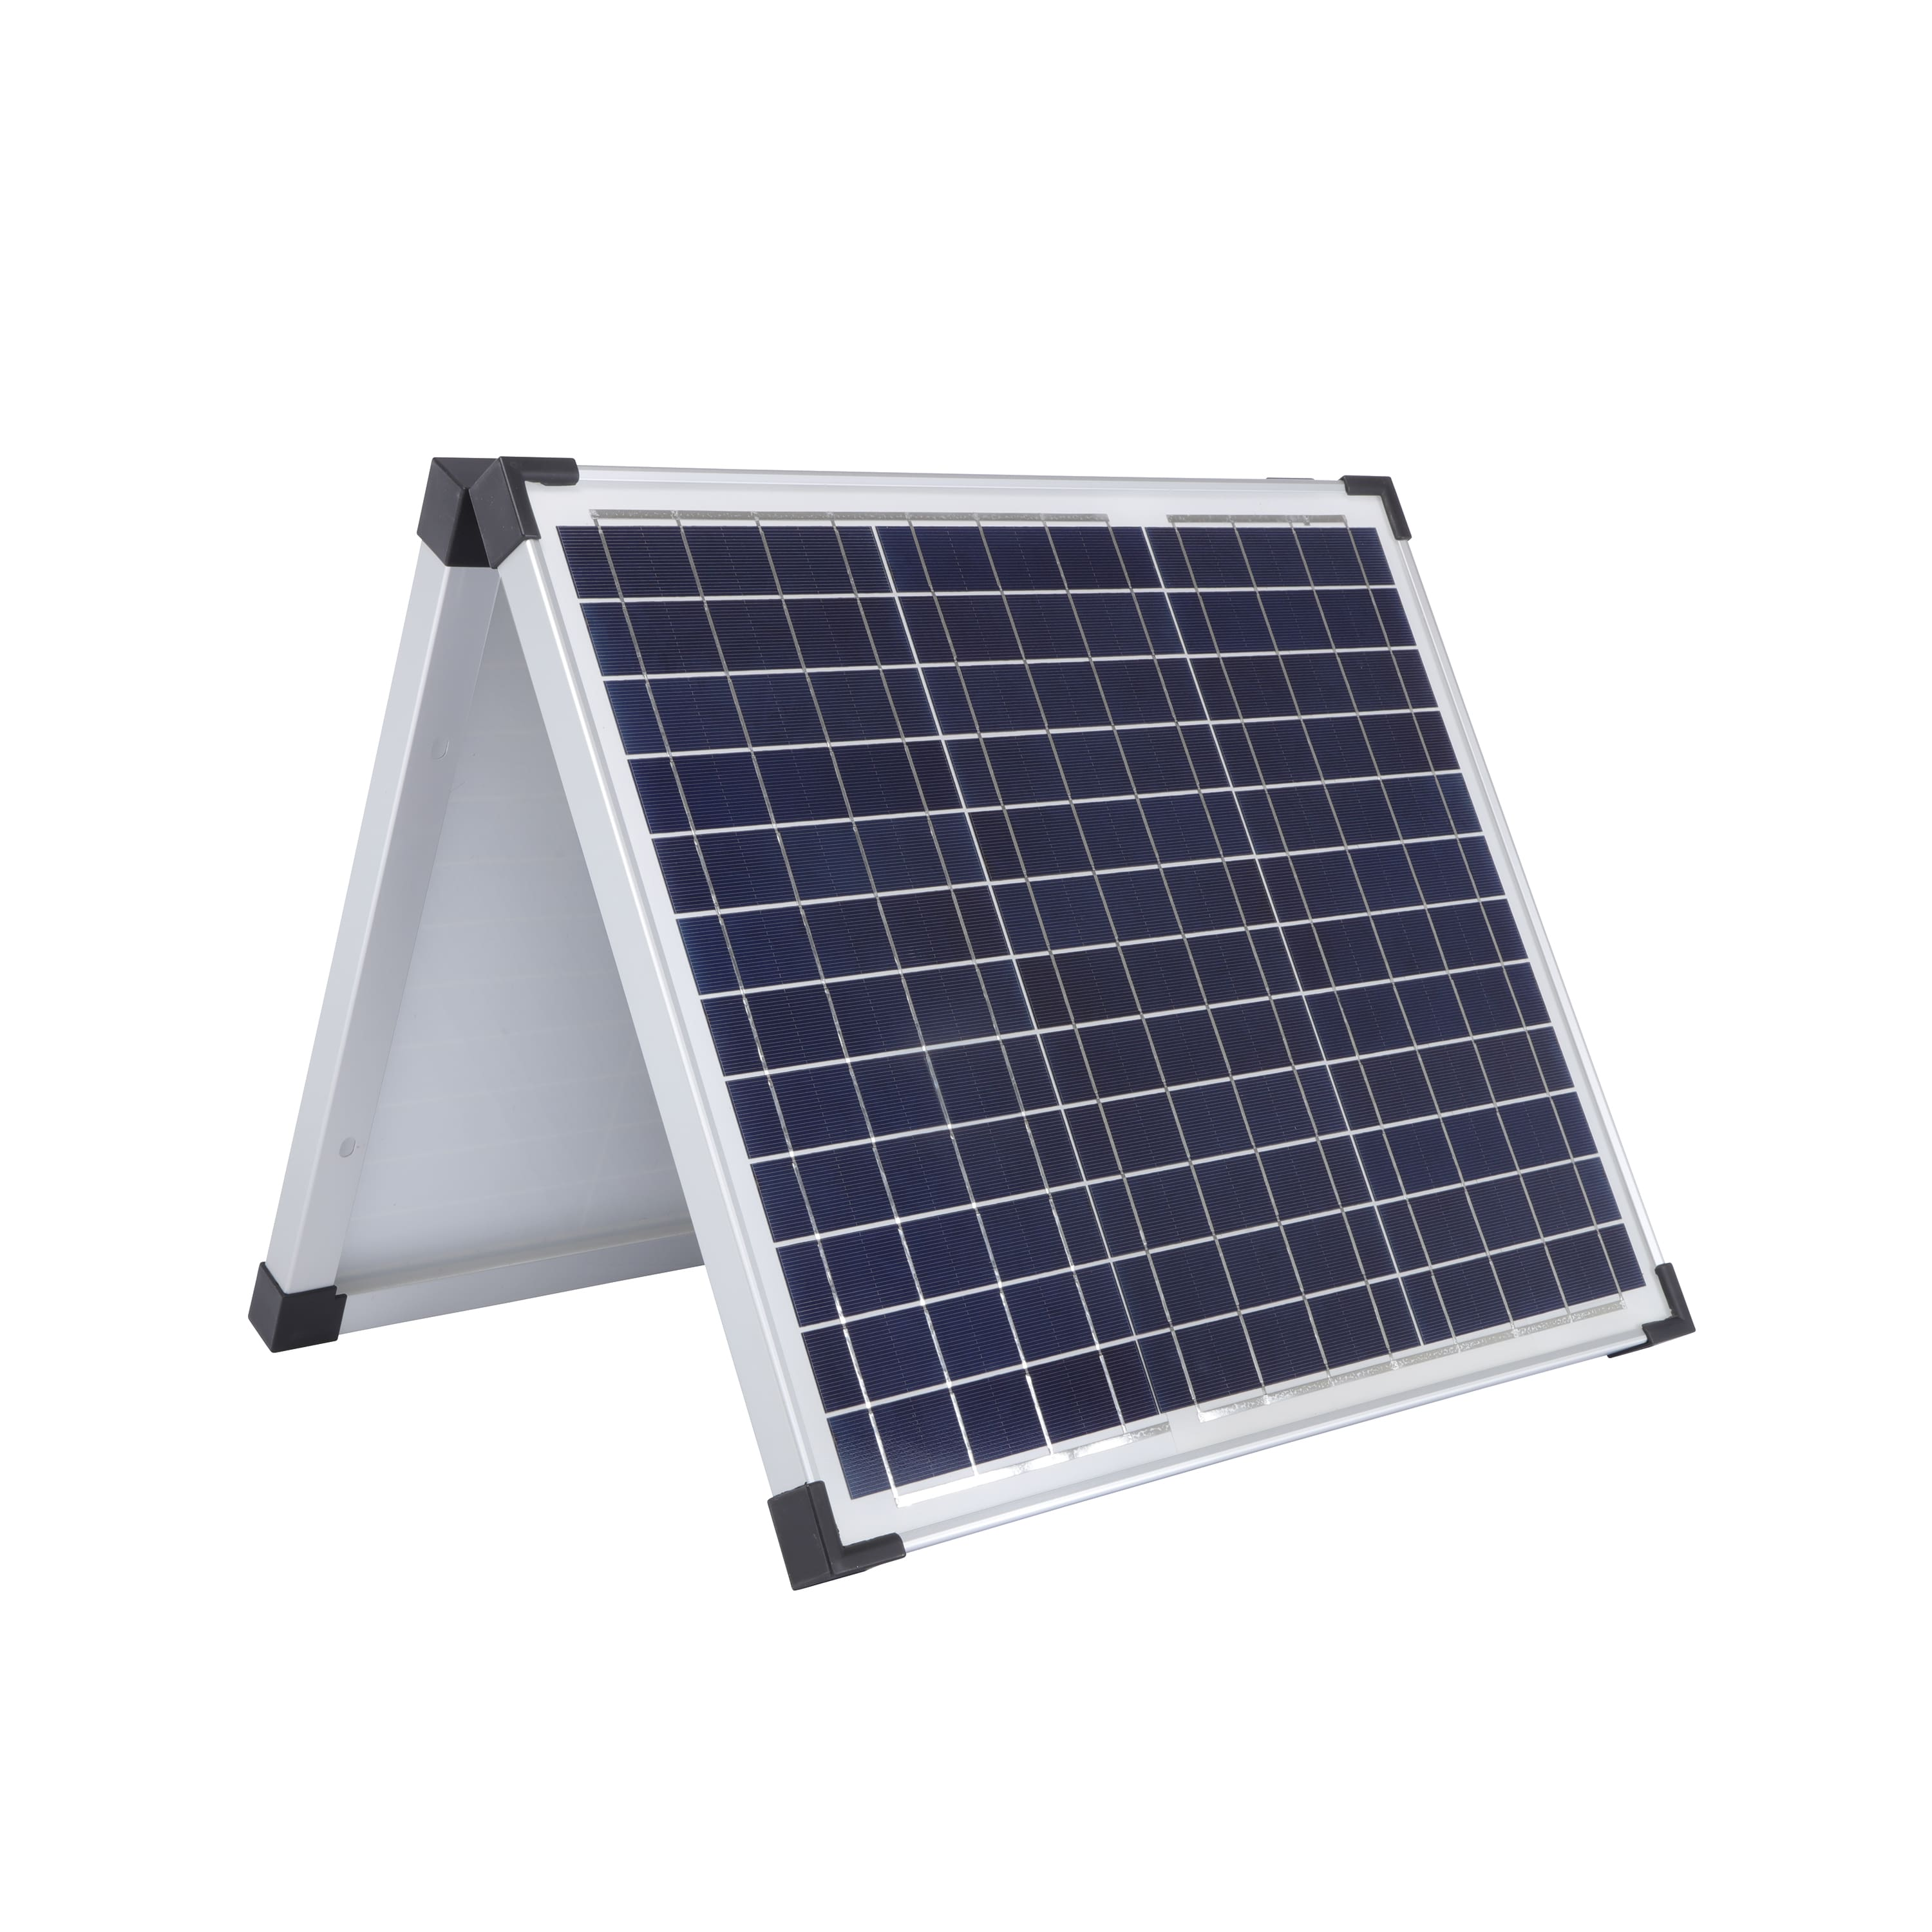 Sun Joe SJ1440SP Folding Solar Panel with Cable 60W - $39.99 + S&H $57.2